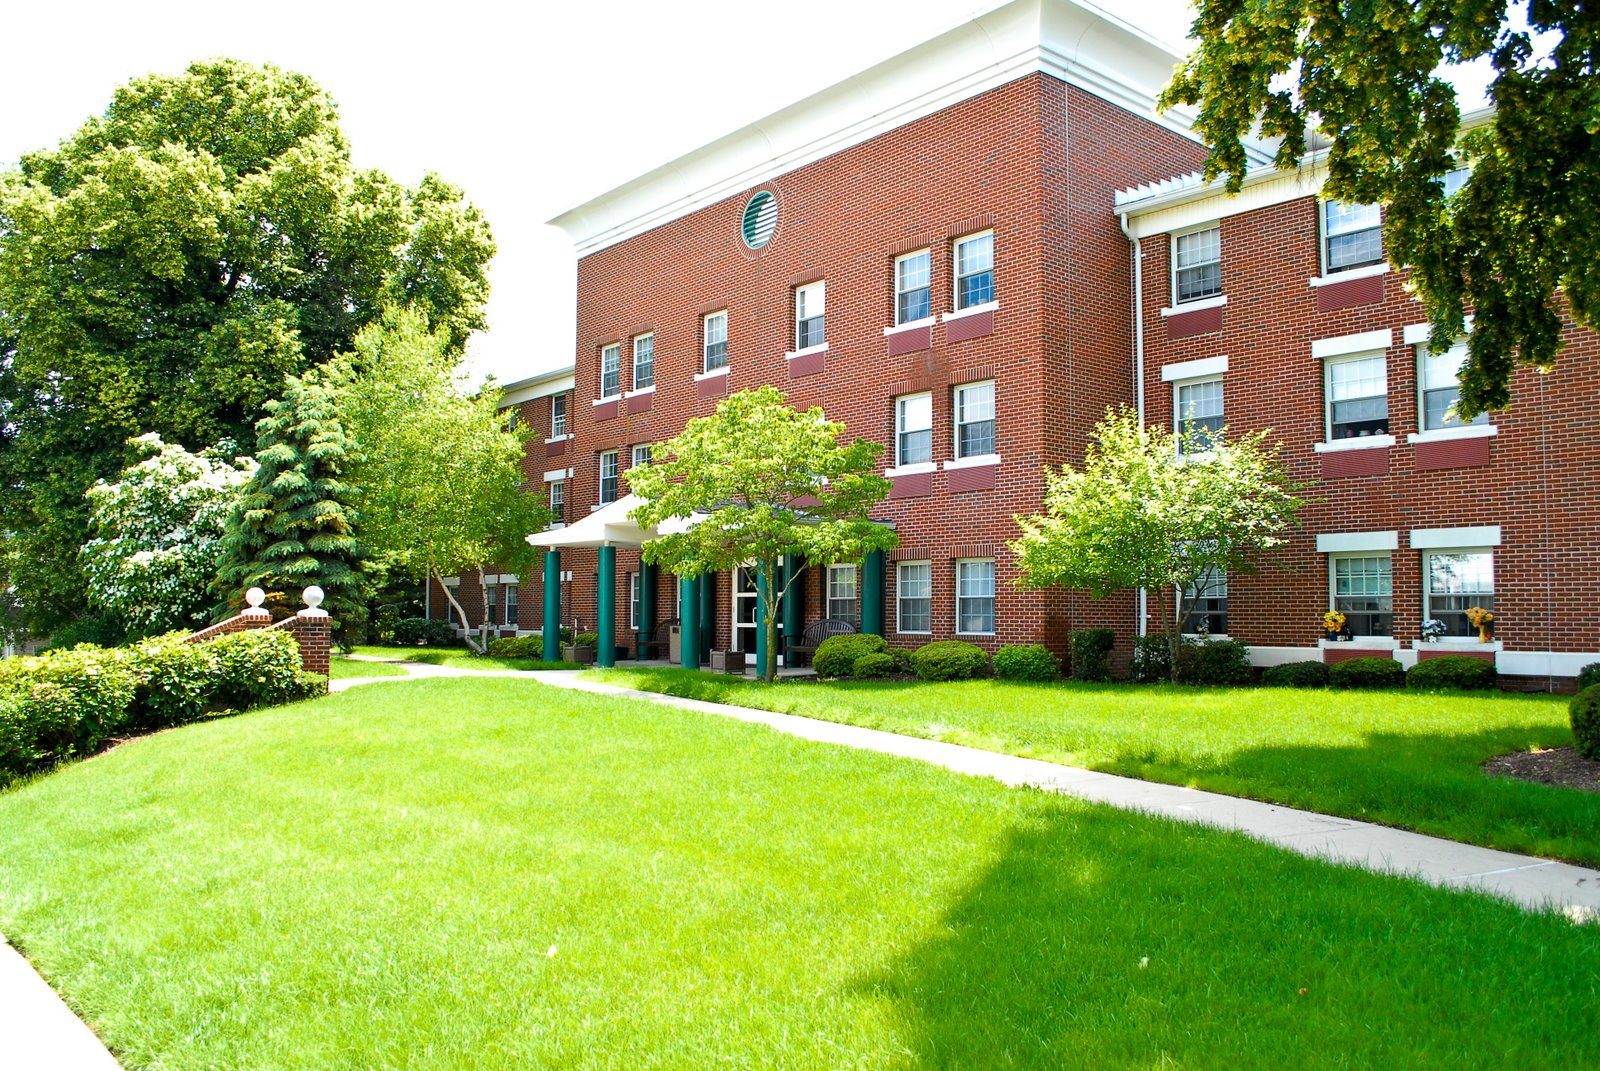 Image of Hasbrouck Heights Senior Housing in Hasbrouck Heights, New Jersey